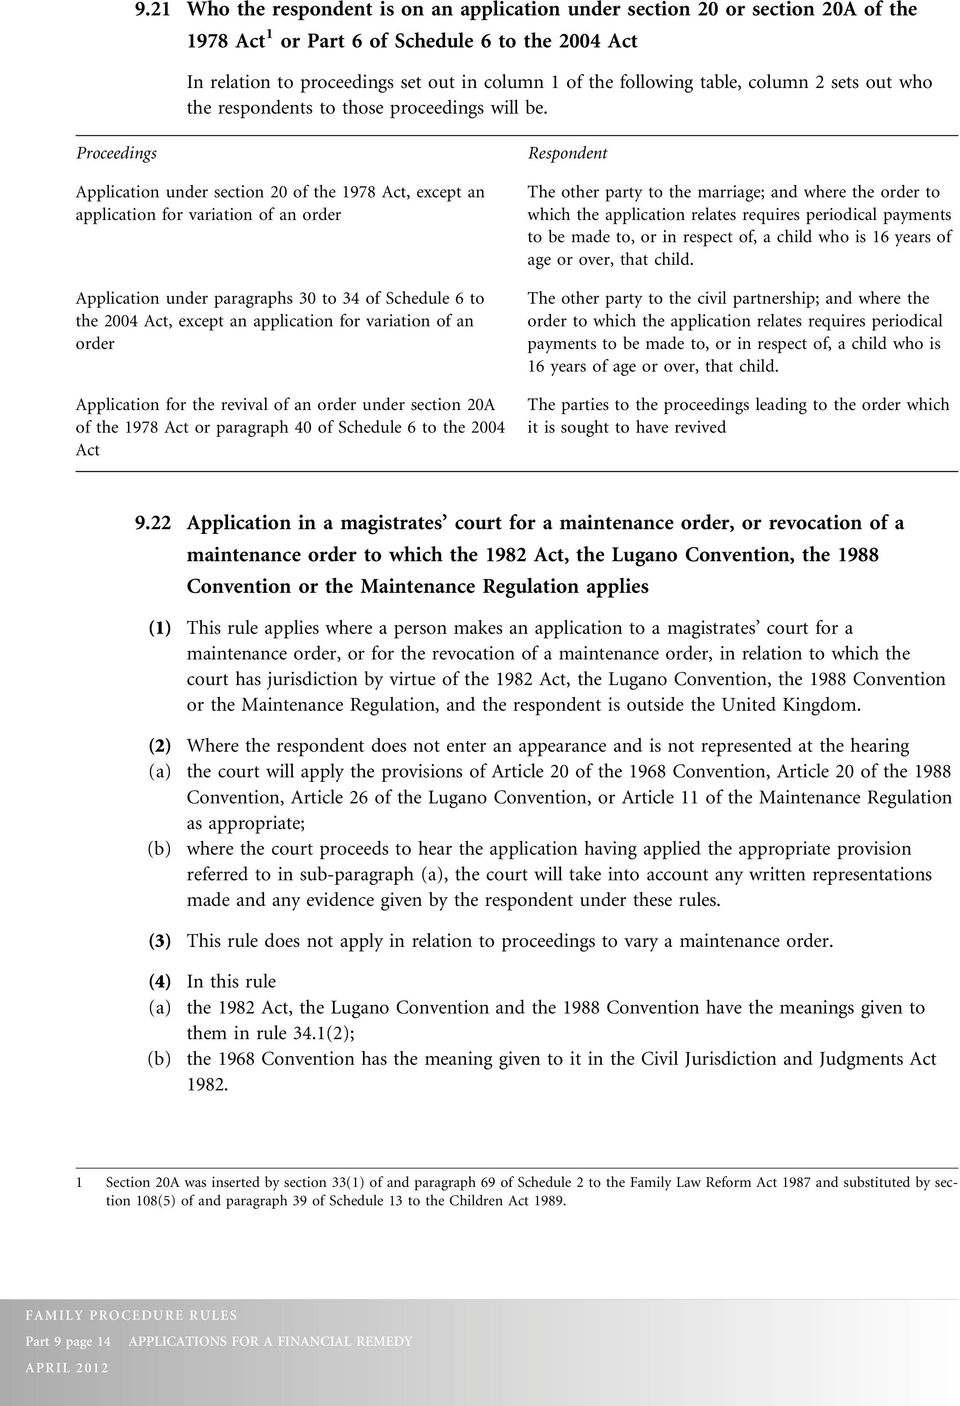 Proceedings Application under section 20 of the 1978 Act, except an application for variation of an order Application under paragraphs 30 to 34 of Schedule 6 to the 2004 Act, except an application